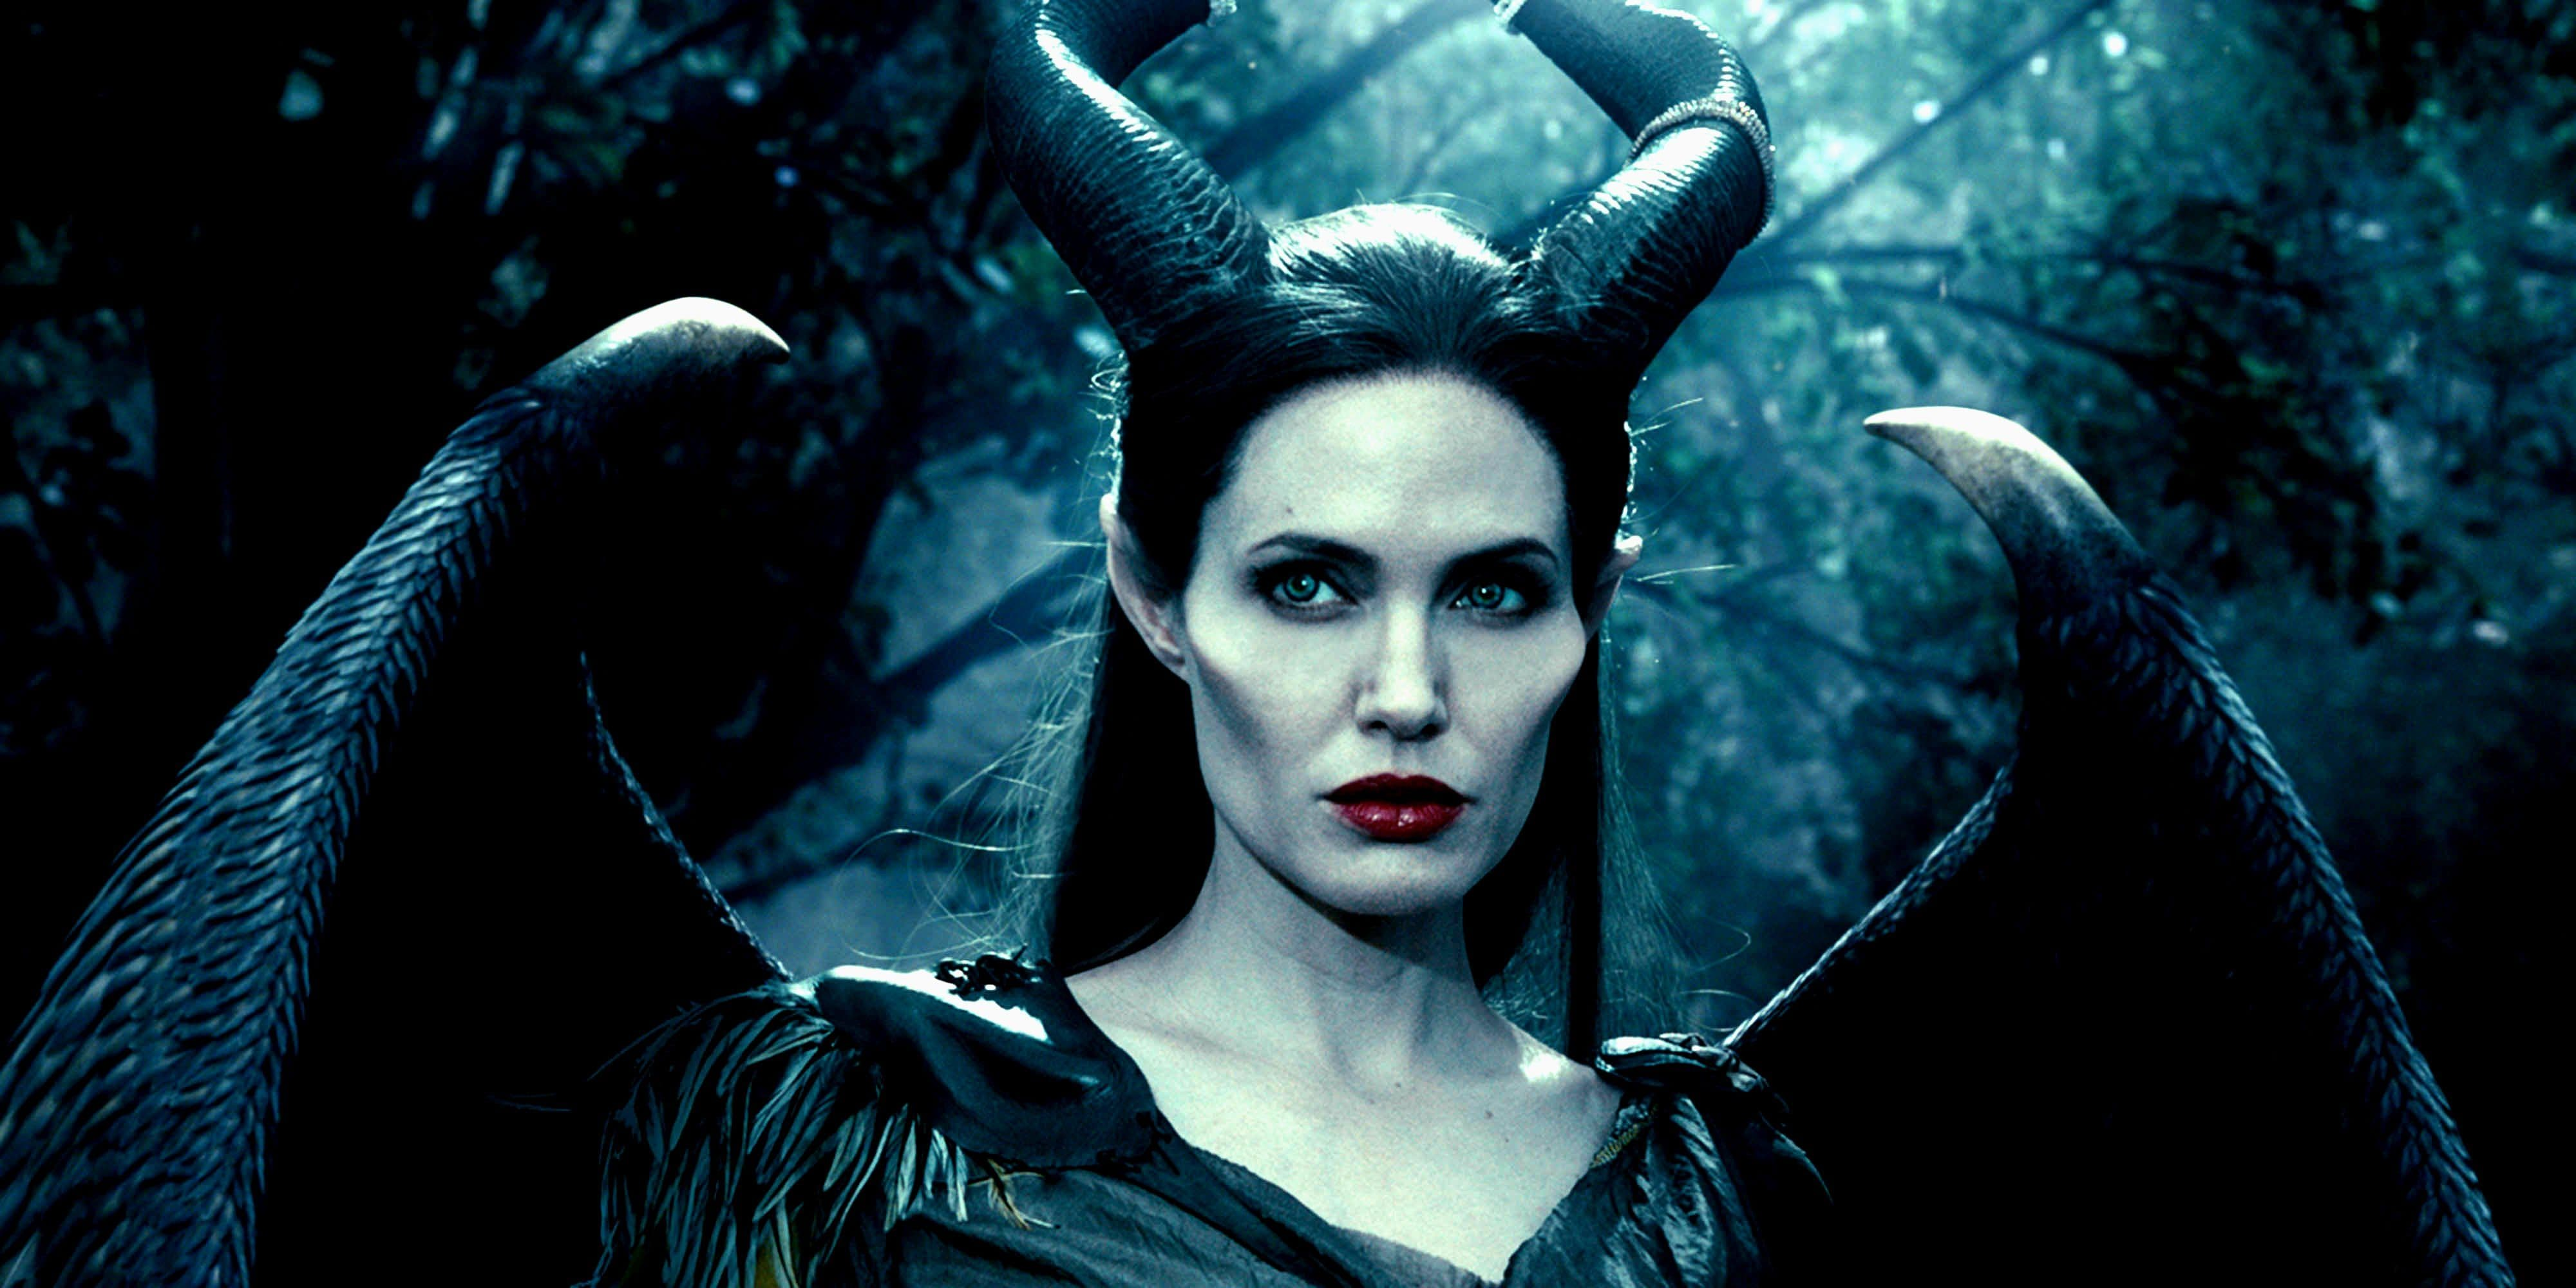 Maleficent HQ wallpapers